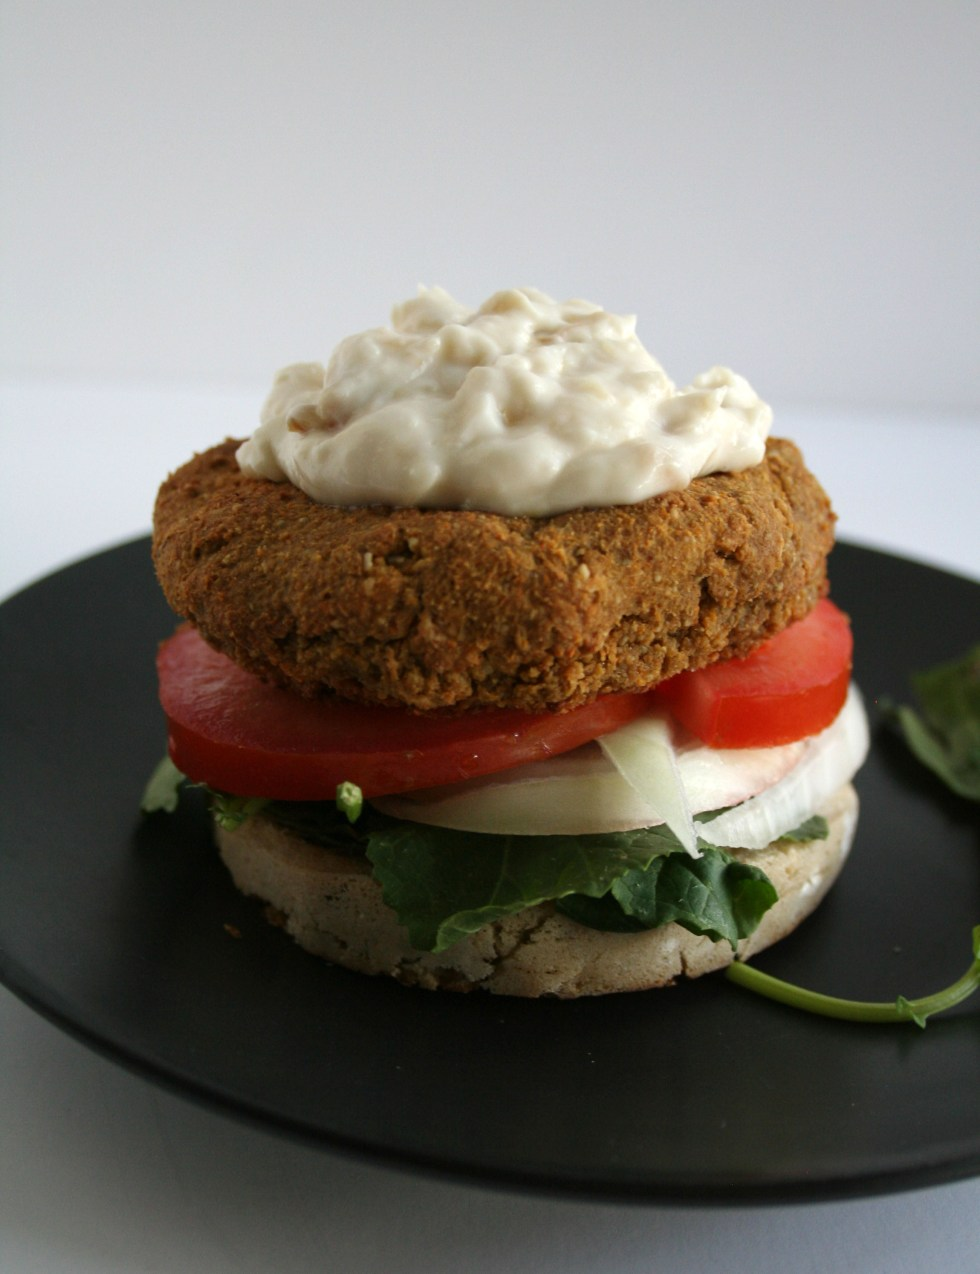 Lentil Burger with Roasted Garlic Mayo